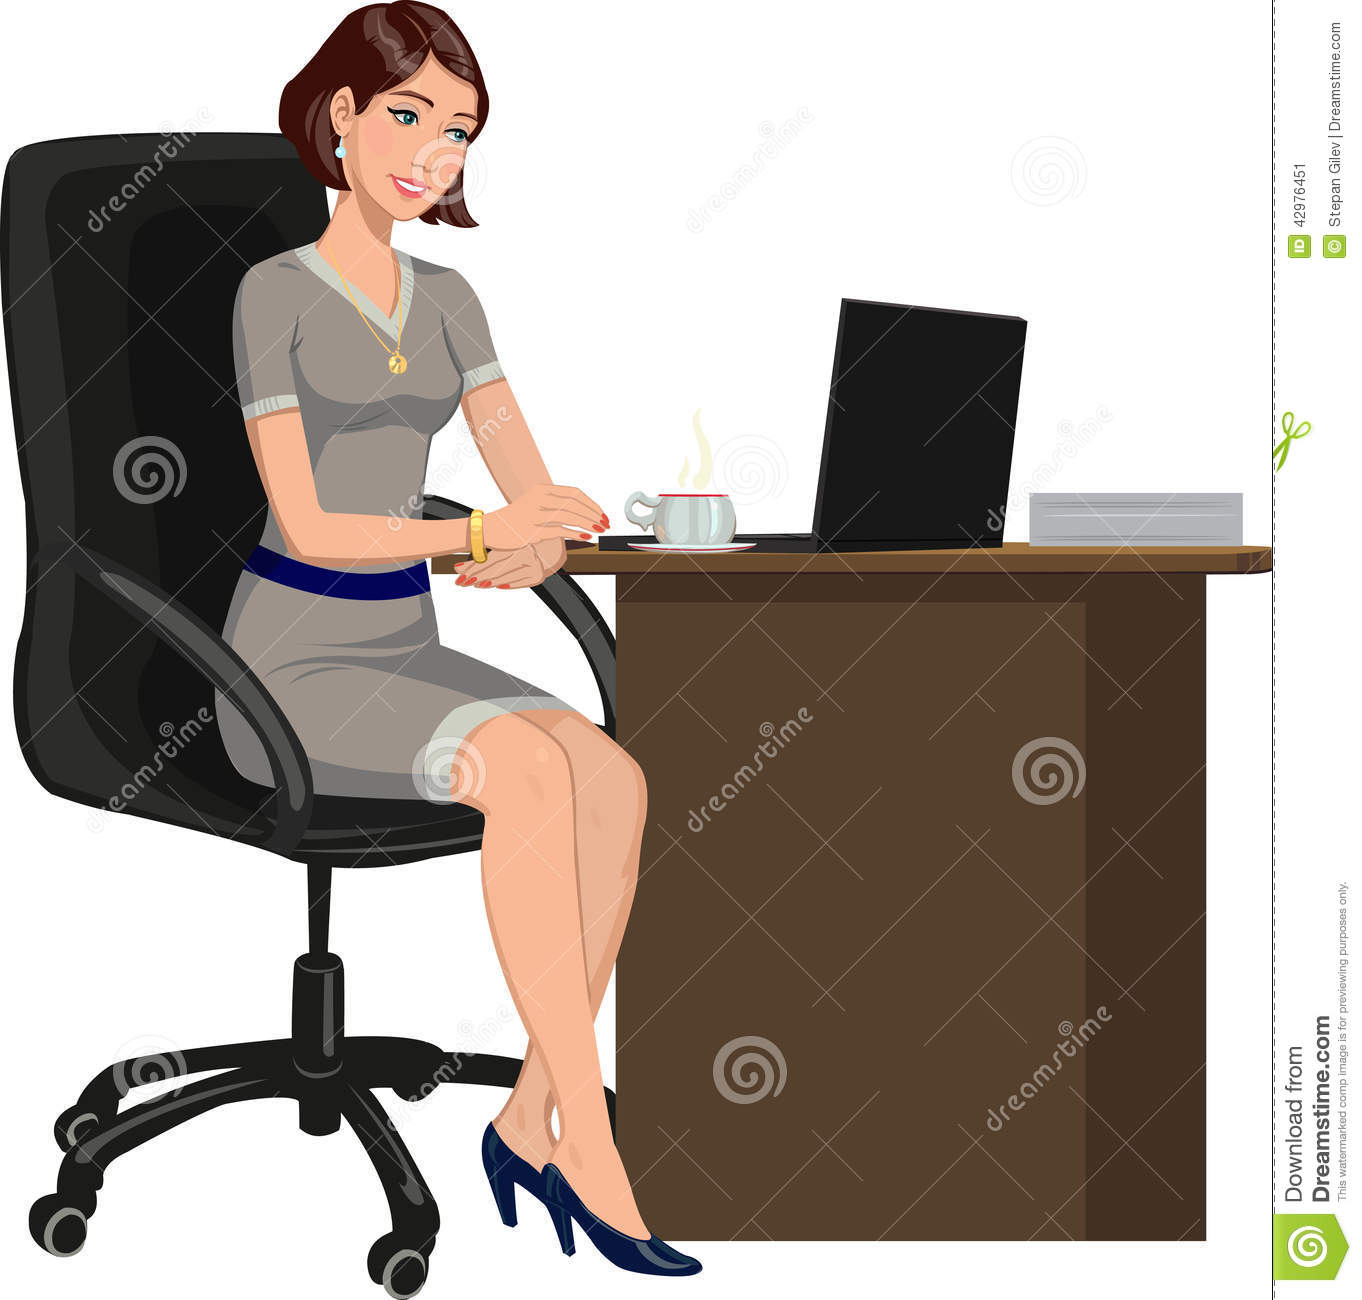 Femme de bureau derri re un bureau avec un ordinateur portable illustration de vecteur image for Photos gratuites travail bureau